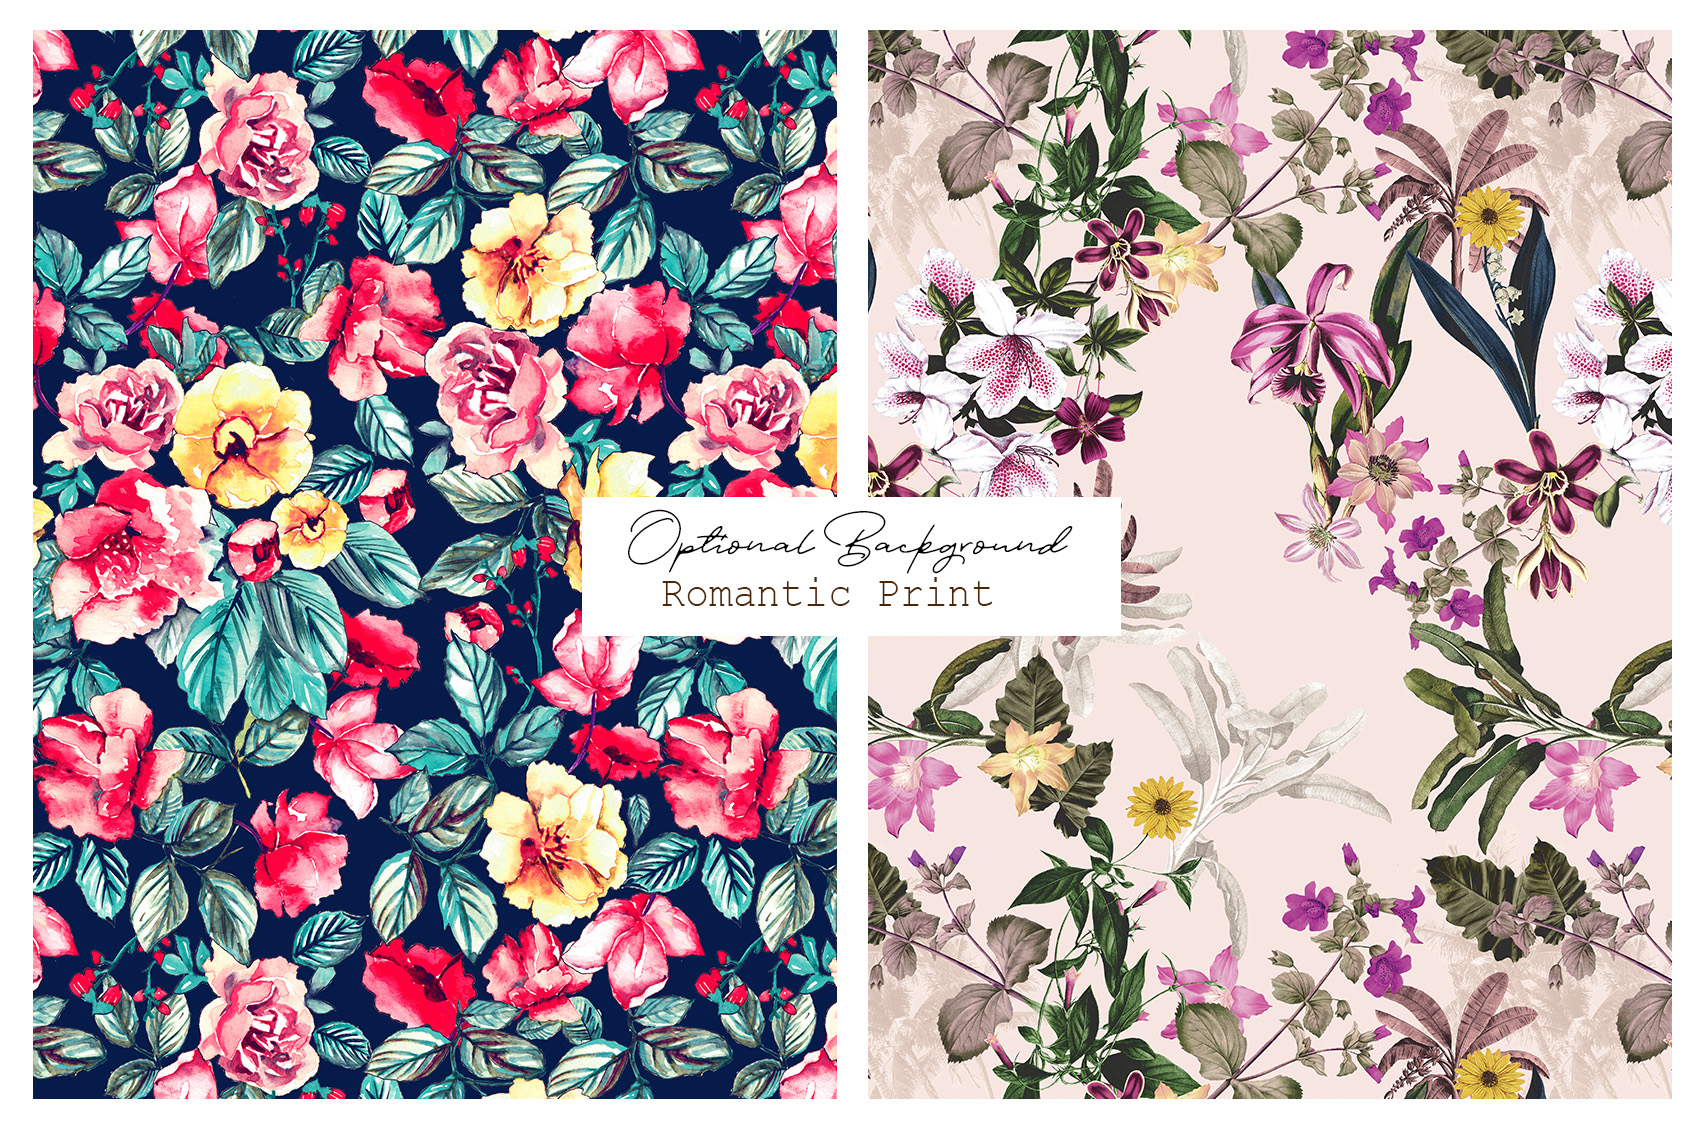 Romance|Flowers Patterns clipArt example image 11